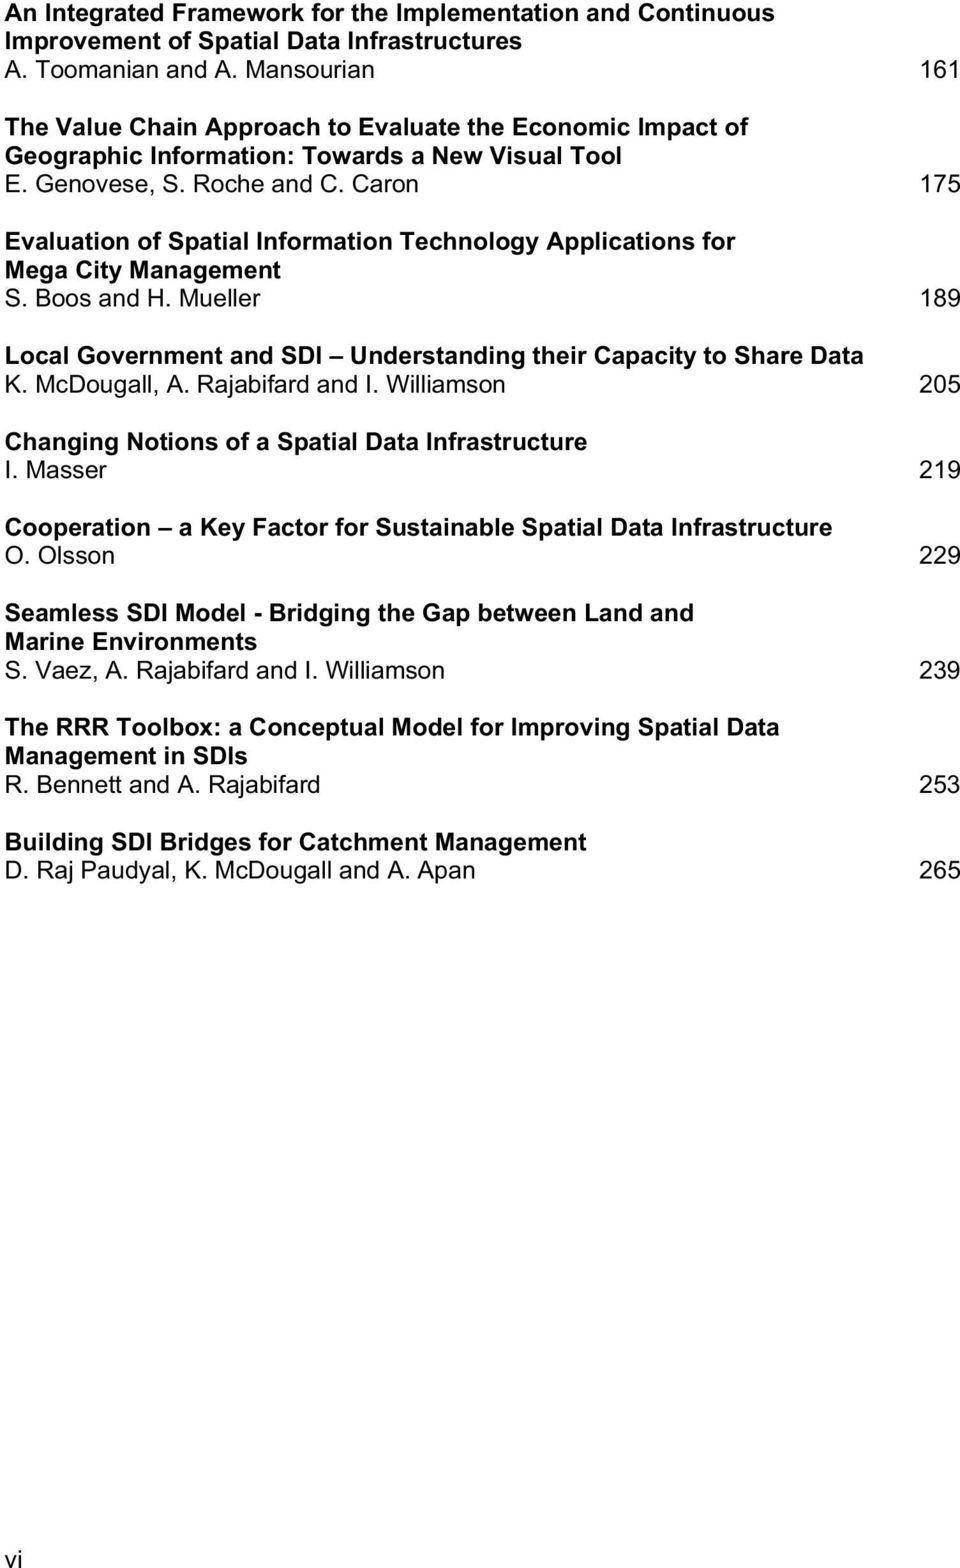 Caron 175 Evaluation of Spatial Information Technology Applications for Mega City Management S. Boos and H. Mueller 189 Local Government and SDI Understanding their Capacity to Share Data K.